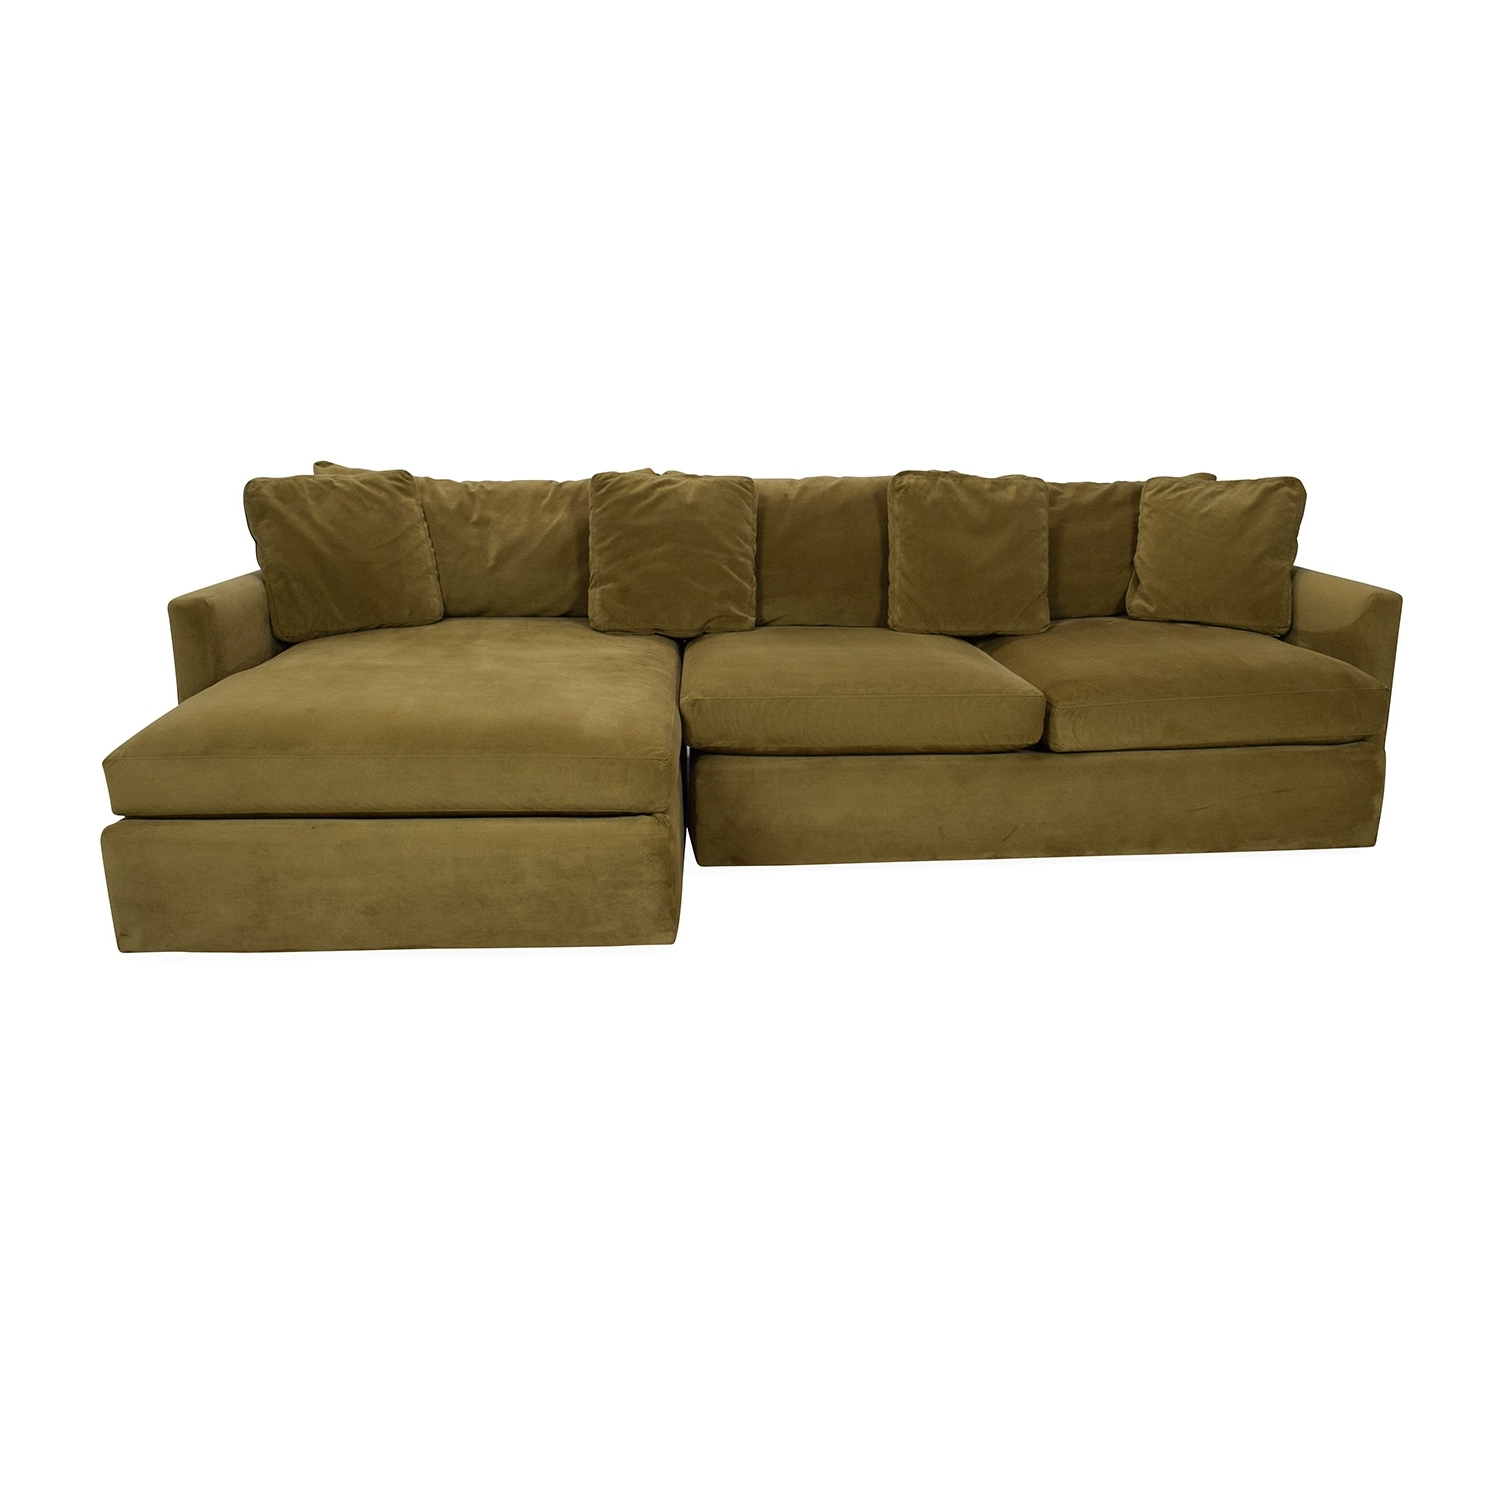 [%65% Off – Crate And Barrel Crate And Barrel Lounge Ii Sectional Inside Most Current Used Sectional Sofas|used Sectional Sofas Inside Preferred 65% Off – Crate And Barrel Crate And Barrel Lounge Ii Sectional|favorite Used Sectional Sofas Regarding 65% Off – Crate And Barrel Crate And Barrel Lounge Ii Sectional|best And Newest 65% Off – Crate And Barrel Crate And Barrel Lounge Ii Sectional Regarding Used Sectional Sofas%] (View 19 of 20)